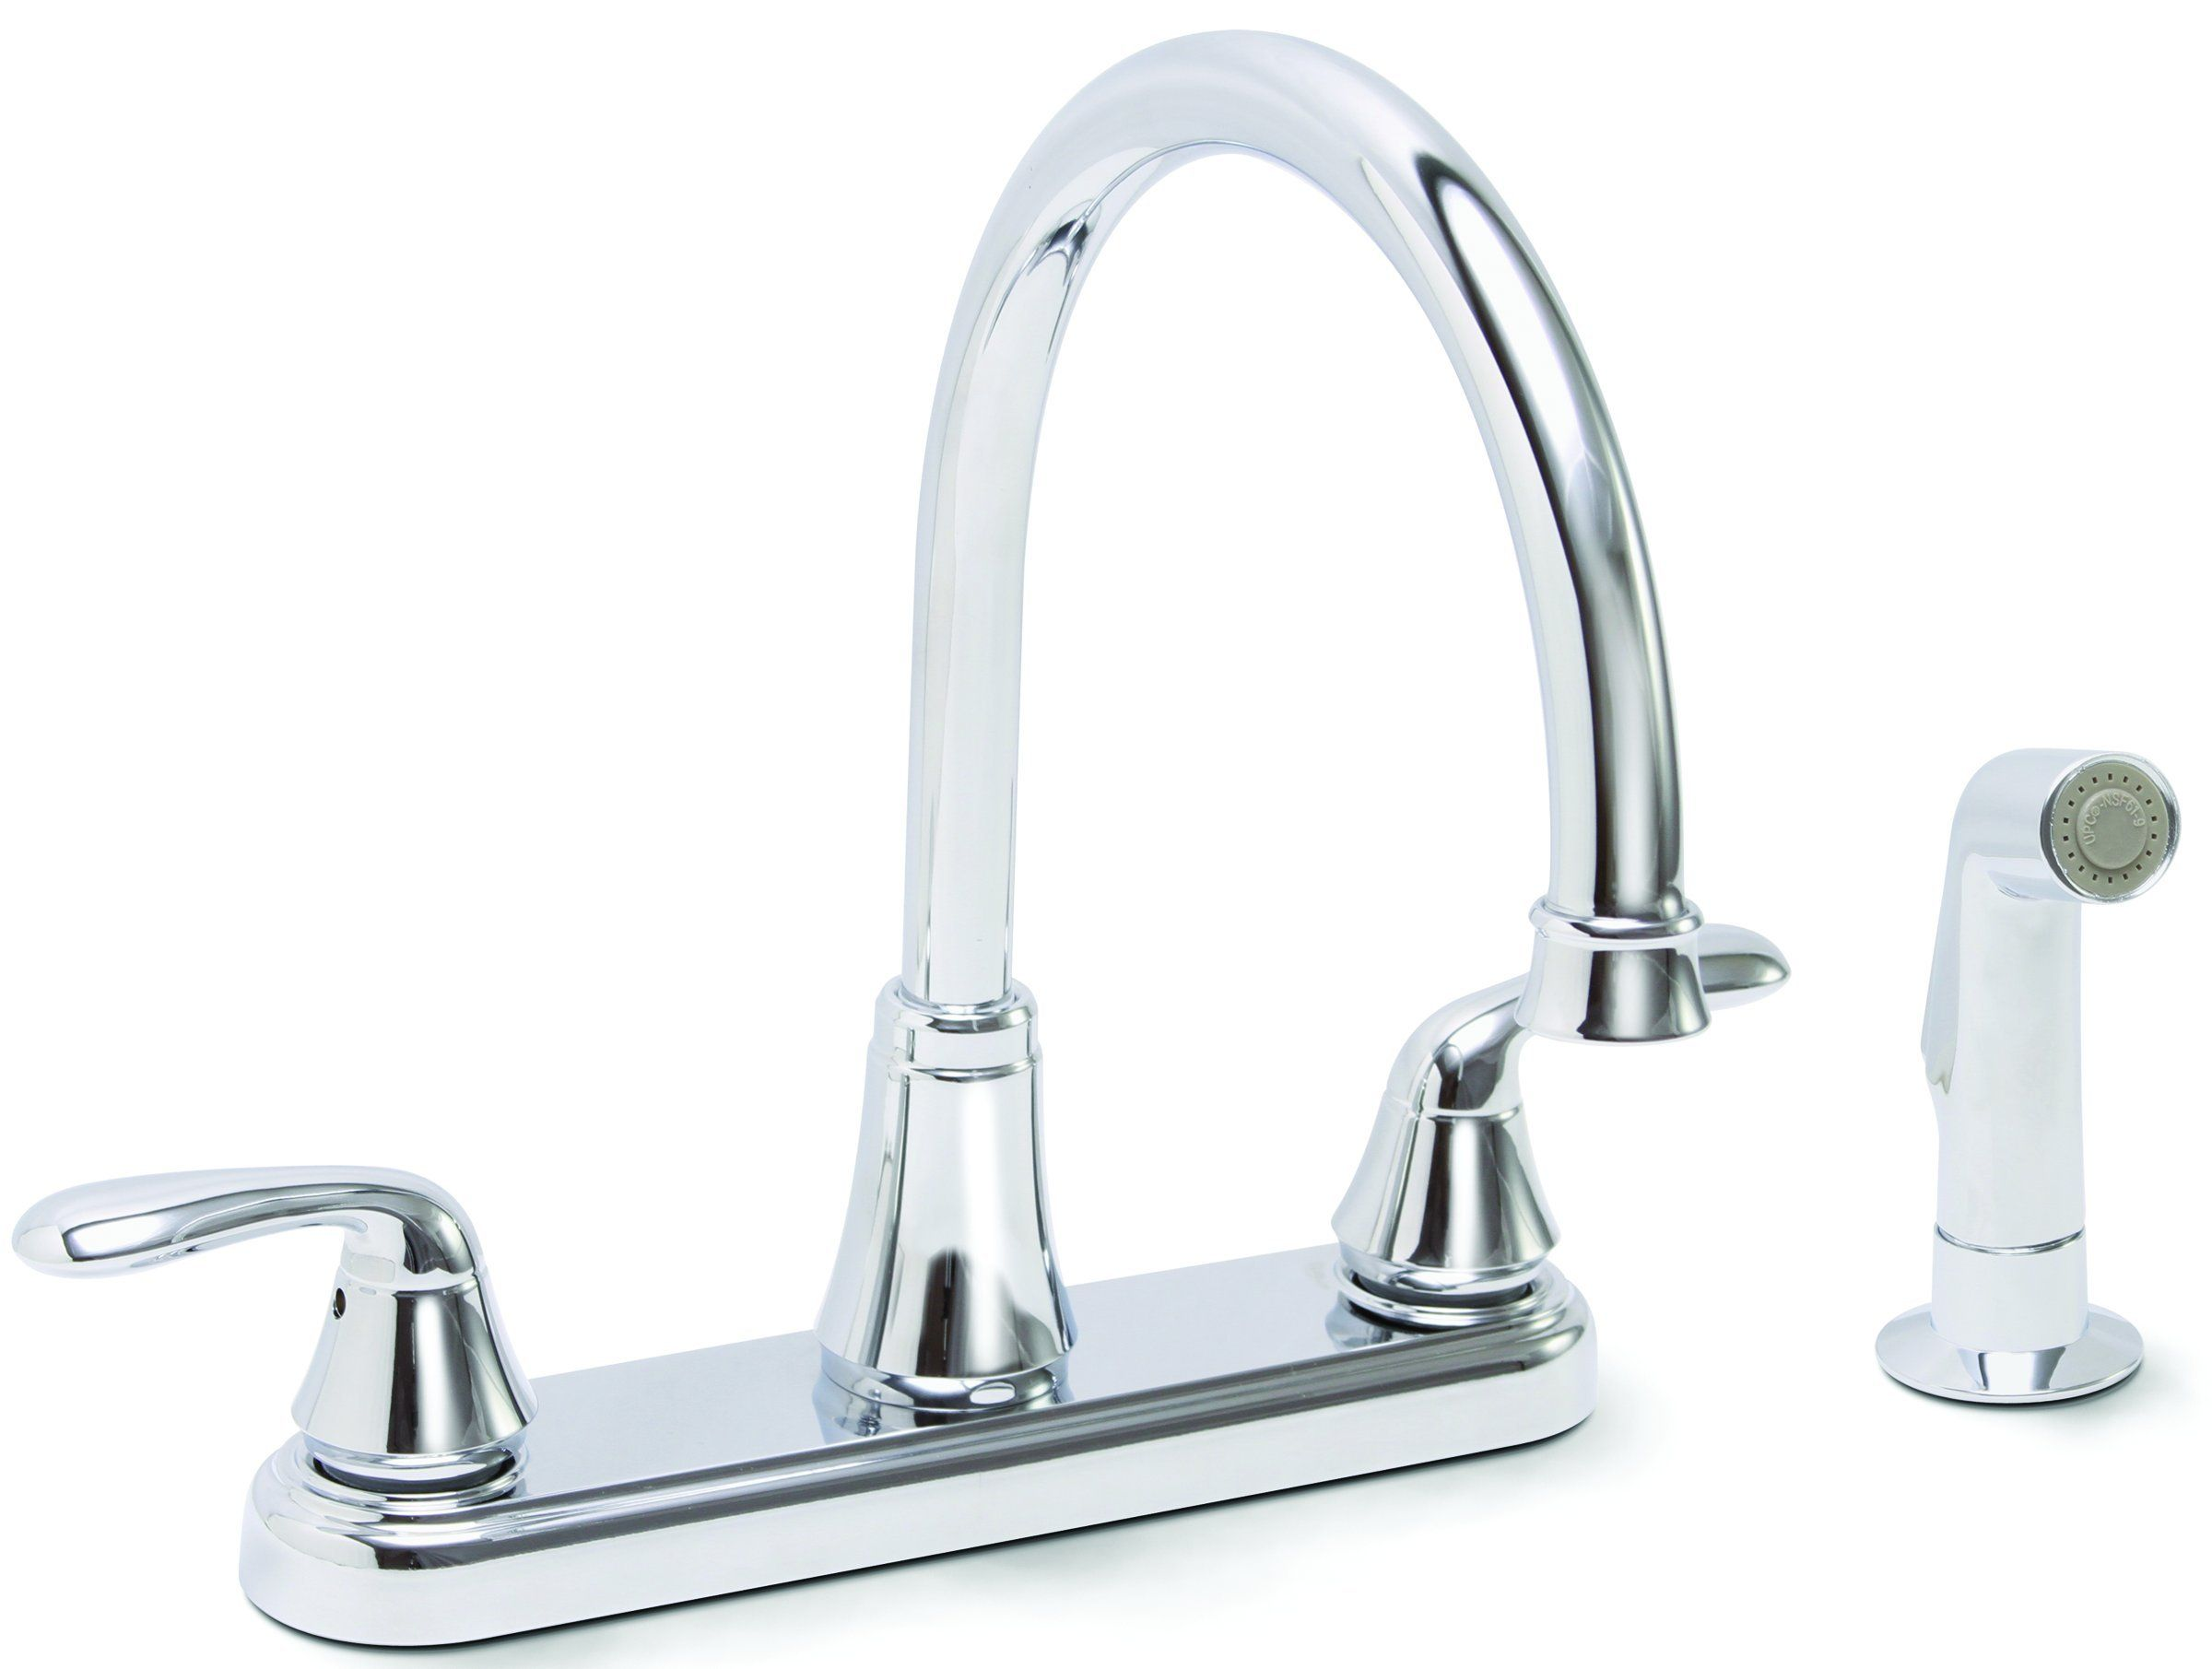 Premier Faucet 126967 Waterfront Lead Free Two Handle Kitchen With Spray Chrome